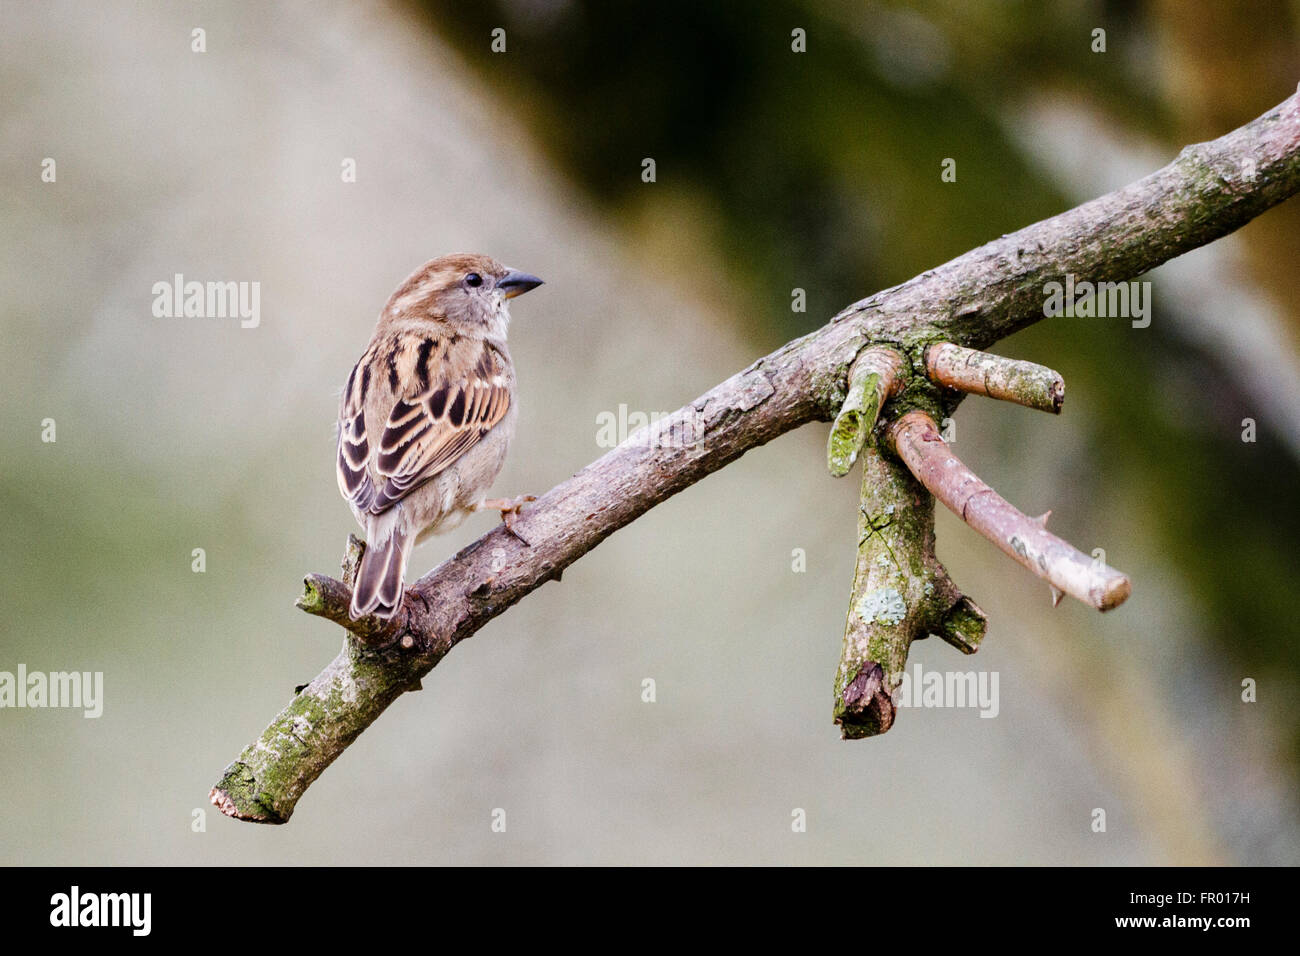 20th March 2016.  World sparrow day aims to raise awareness on conservation efforts for the House Sparrow (Passer - Stock Image